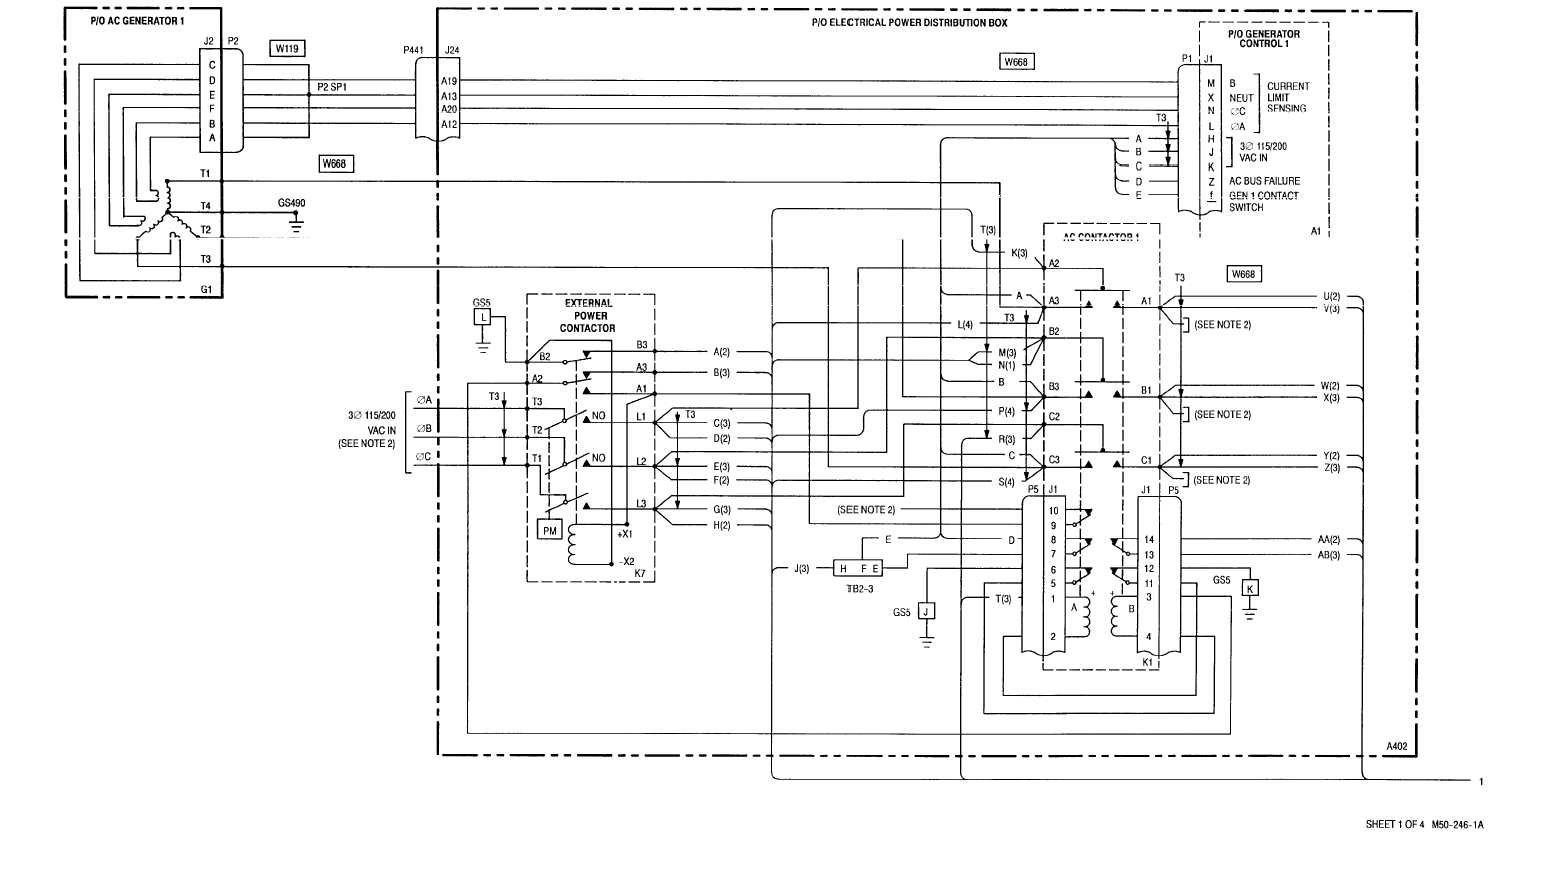 AC ELECTRICAL POWER GENERATION - WIRING DIAGRAM 9–1 9–3